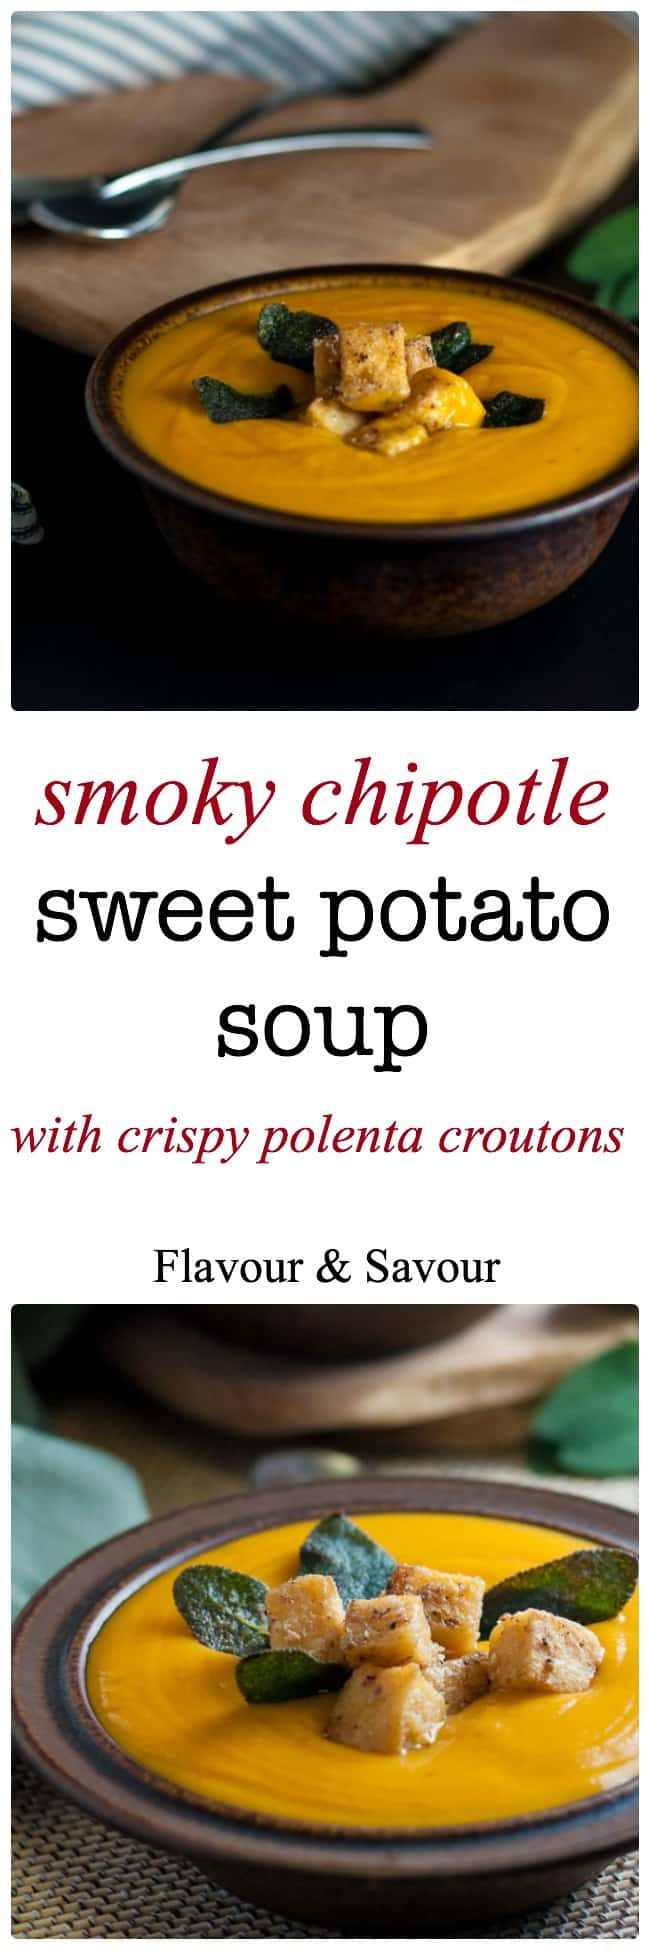 Smoky Chipotle Sweet Potato Soup with crispy polenta croutons and toasted sage leaves. Paleo and vegan.  www.flavourandsavour.com